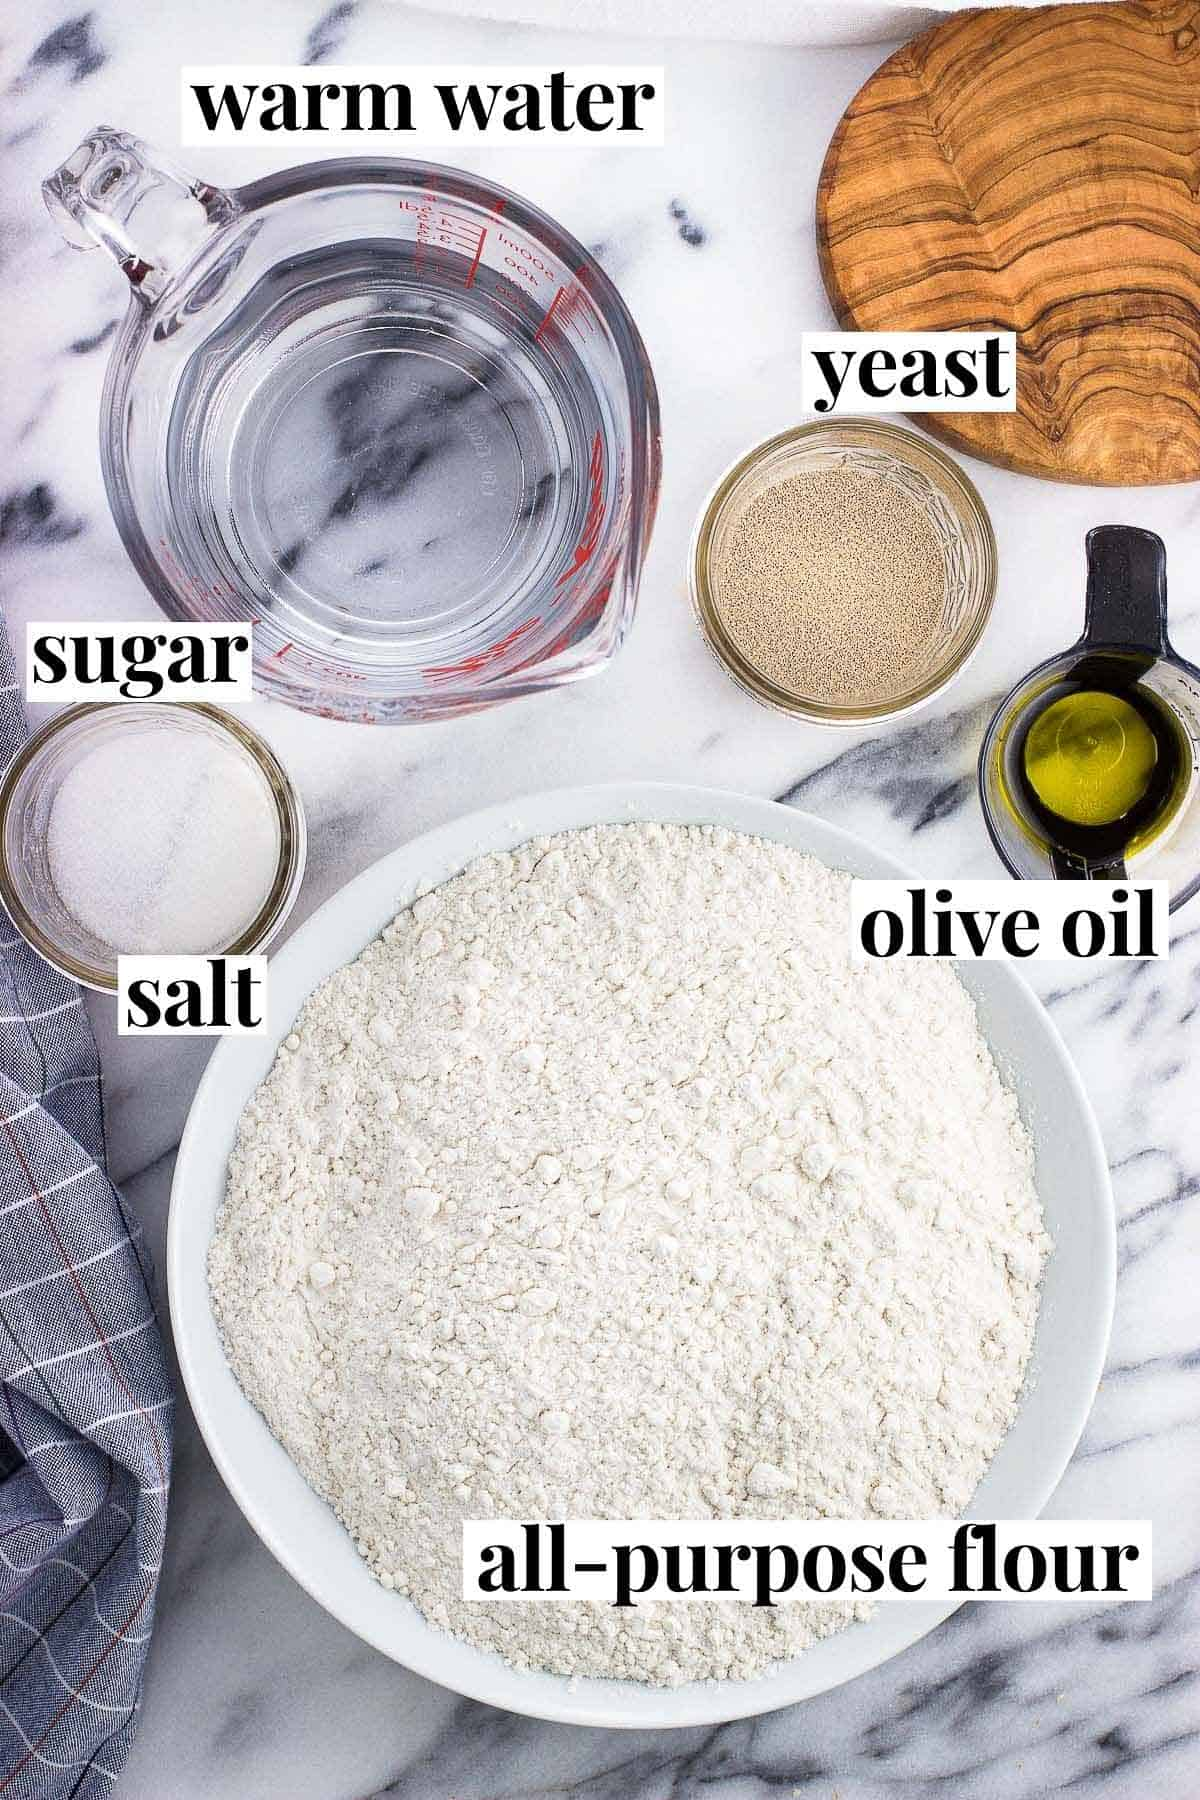 Labeled recipe ingredients in separate containers on a marble board.